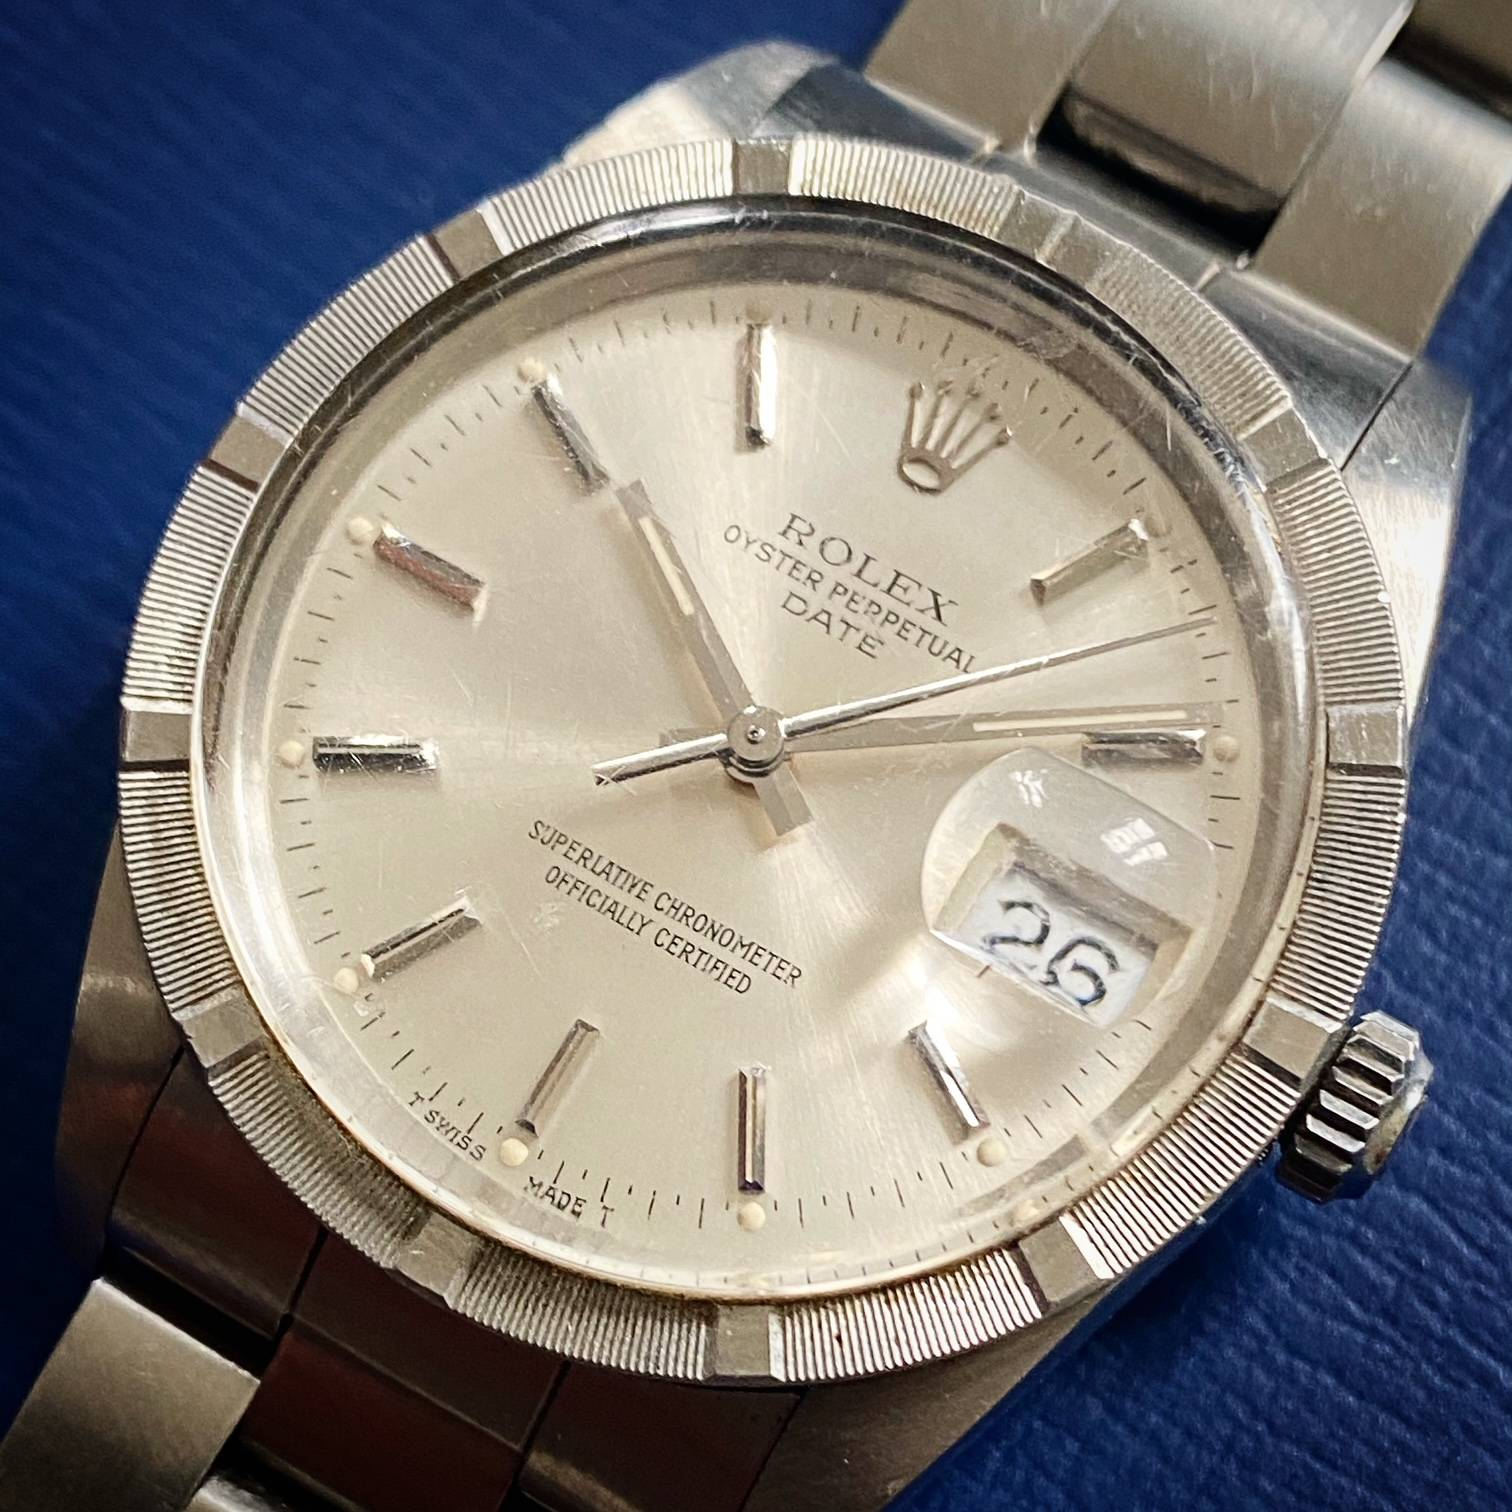 ROLEX OYSTER PERPETUAL DATE ENGINE TURNED BEZEL-3